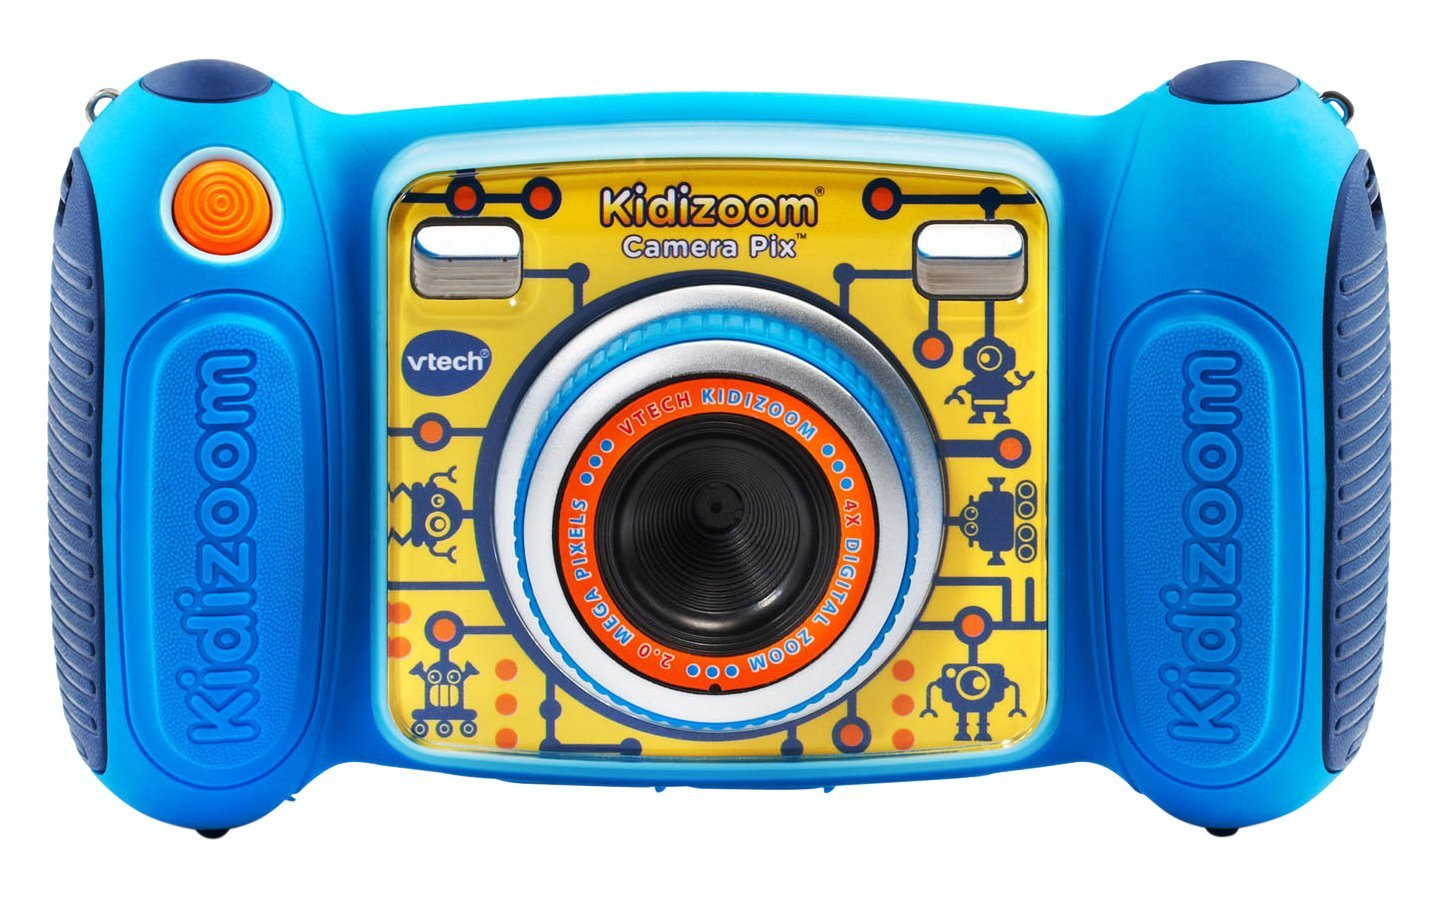 VTech Kidizoom Camera Pix, Pink (Frustration Free Packaging) 80-193651